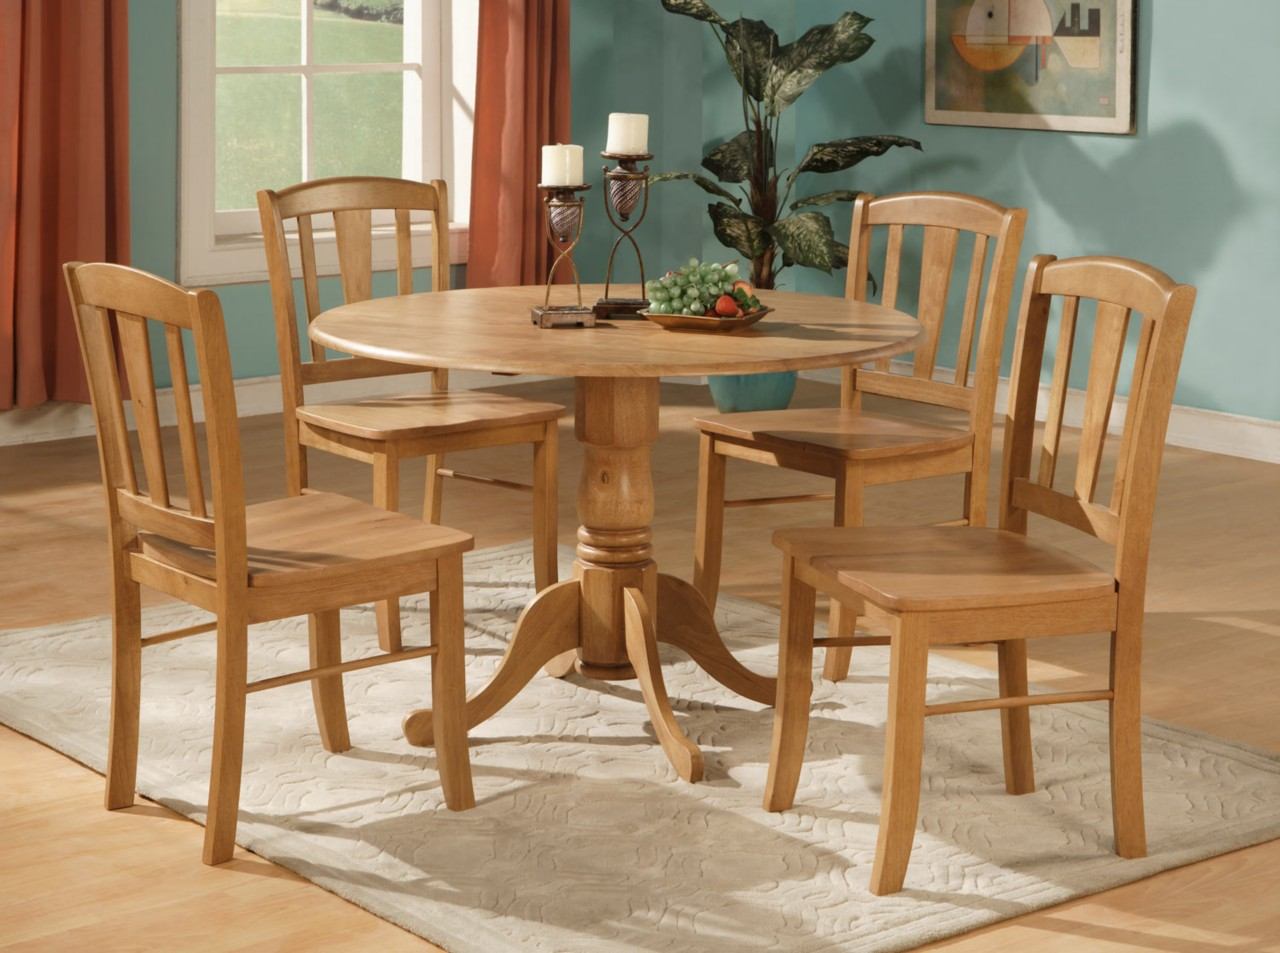 5pc round dinette kitchen dining set table and 4 chairs ebay for Dinette furniture